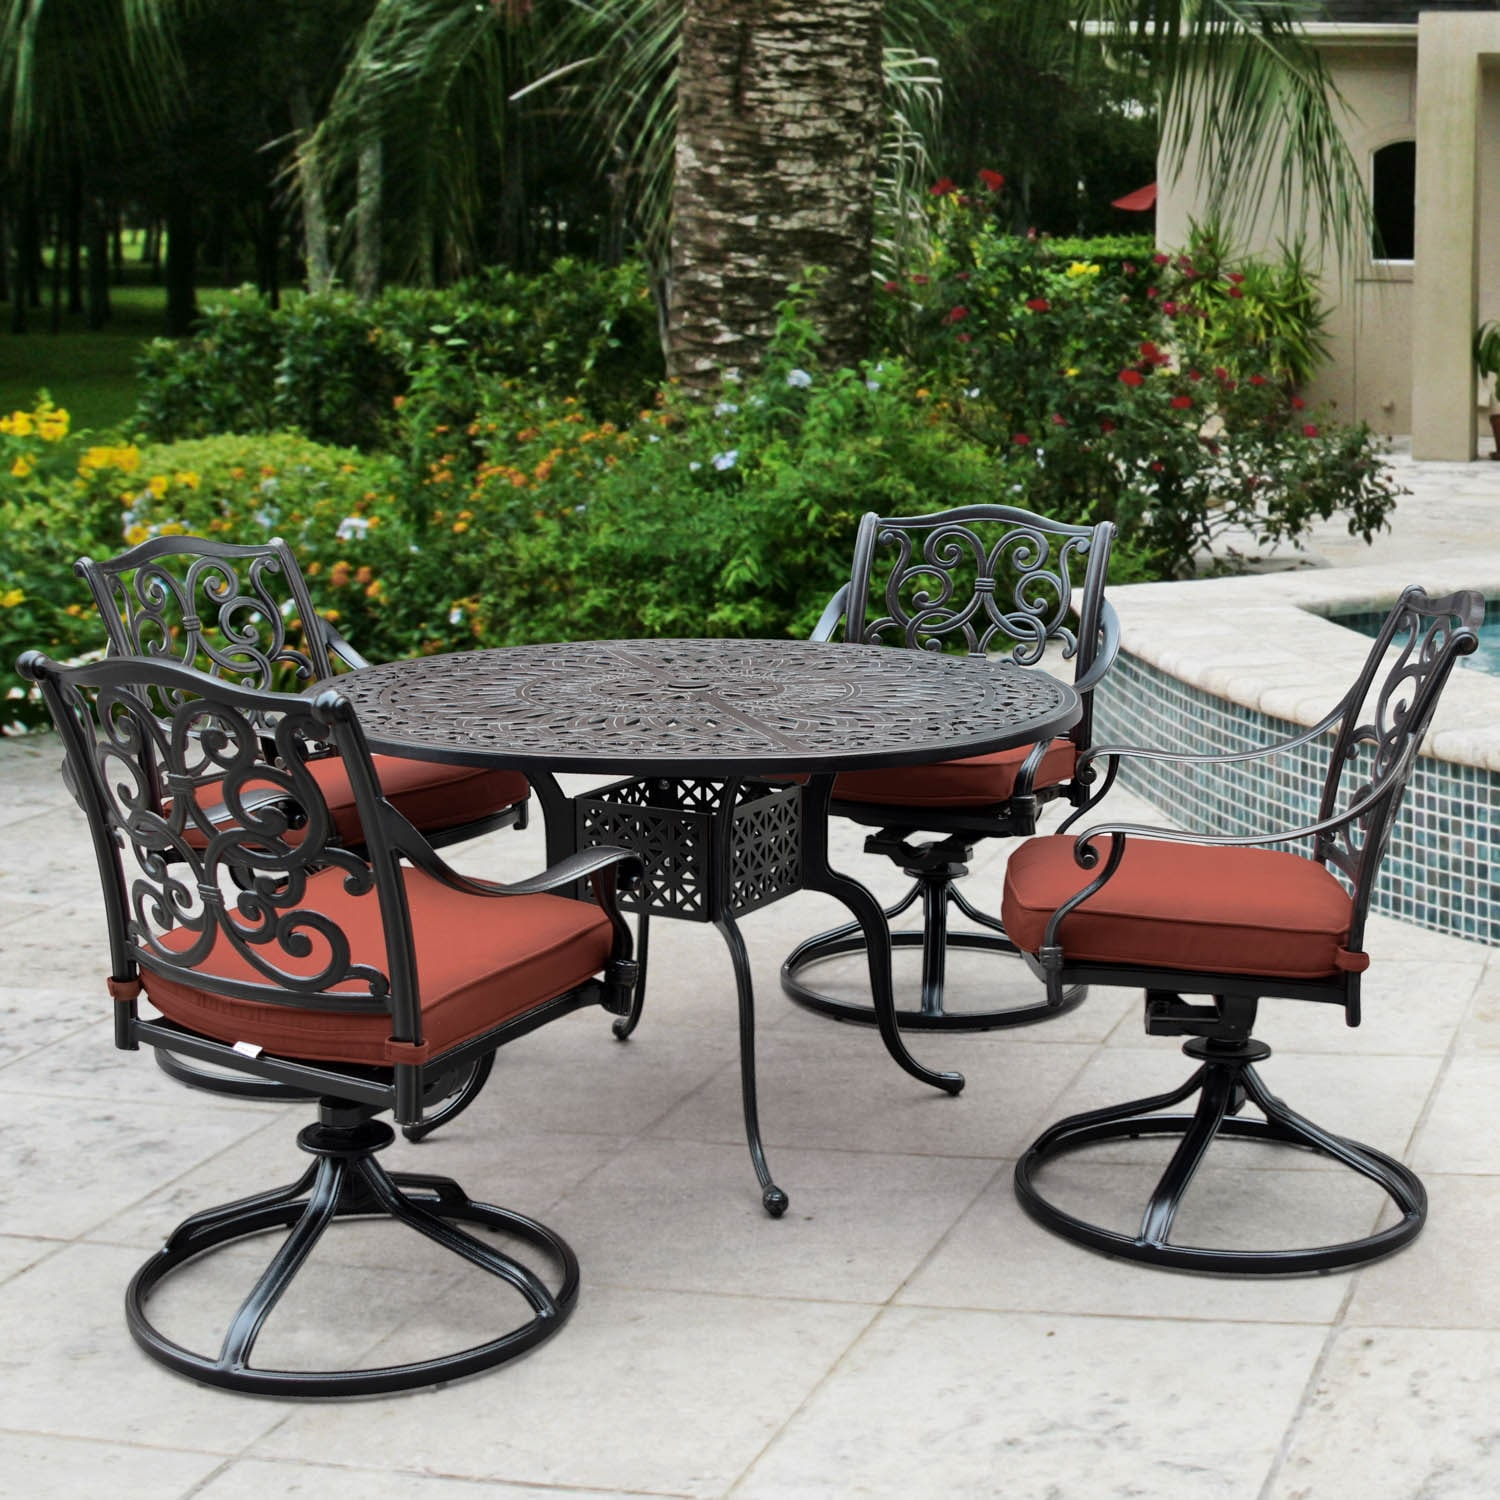 Outdoor Patio Furniture Dining Sets & Seating Ultimate Patio